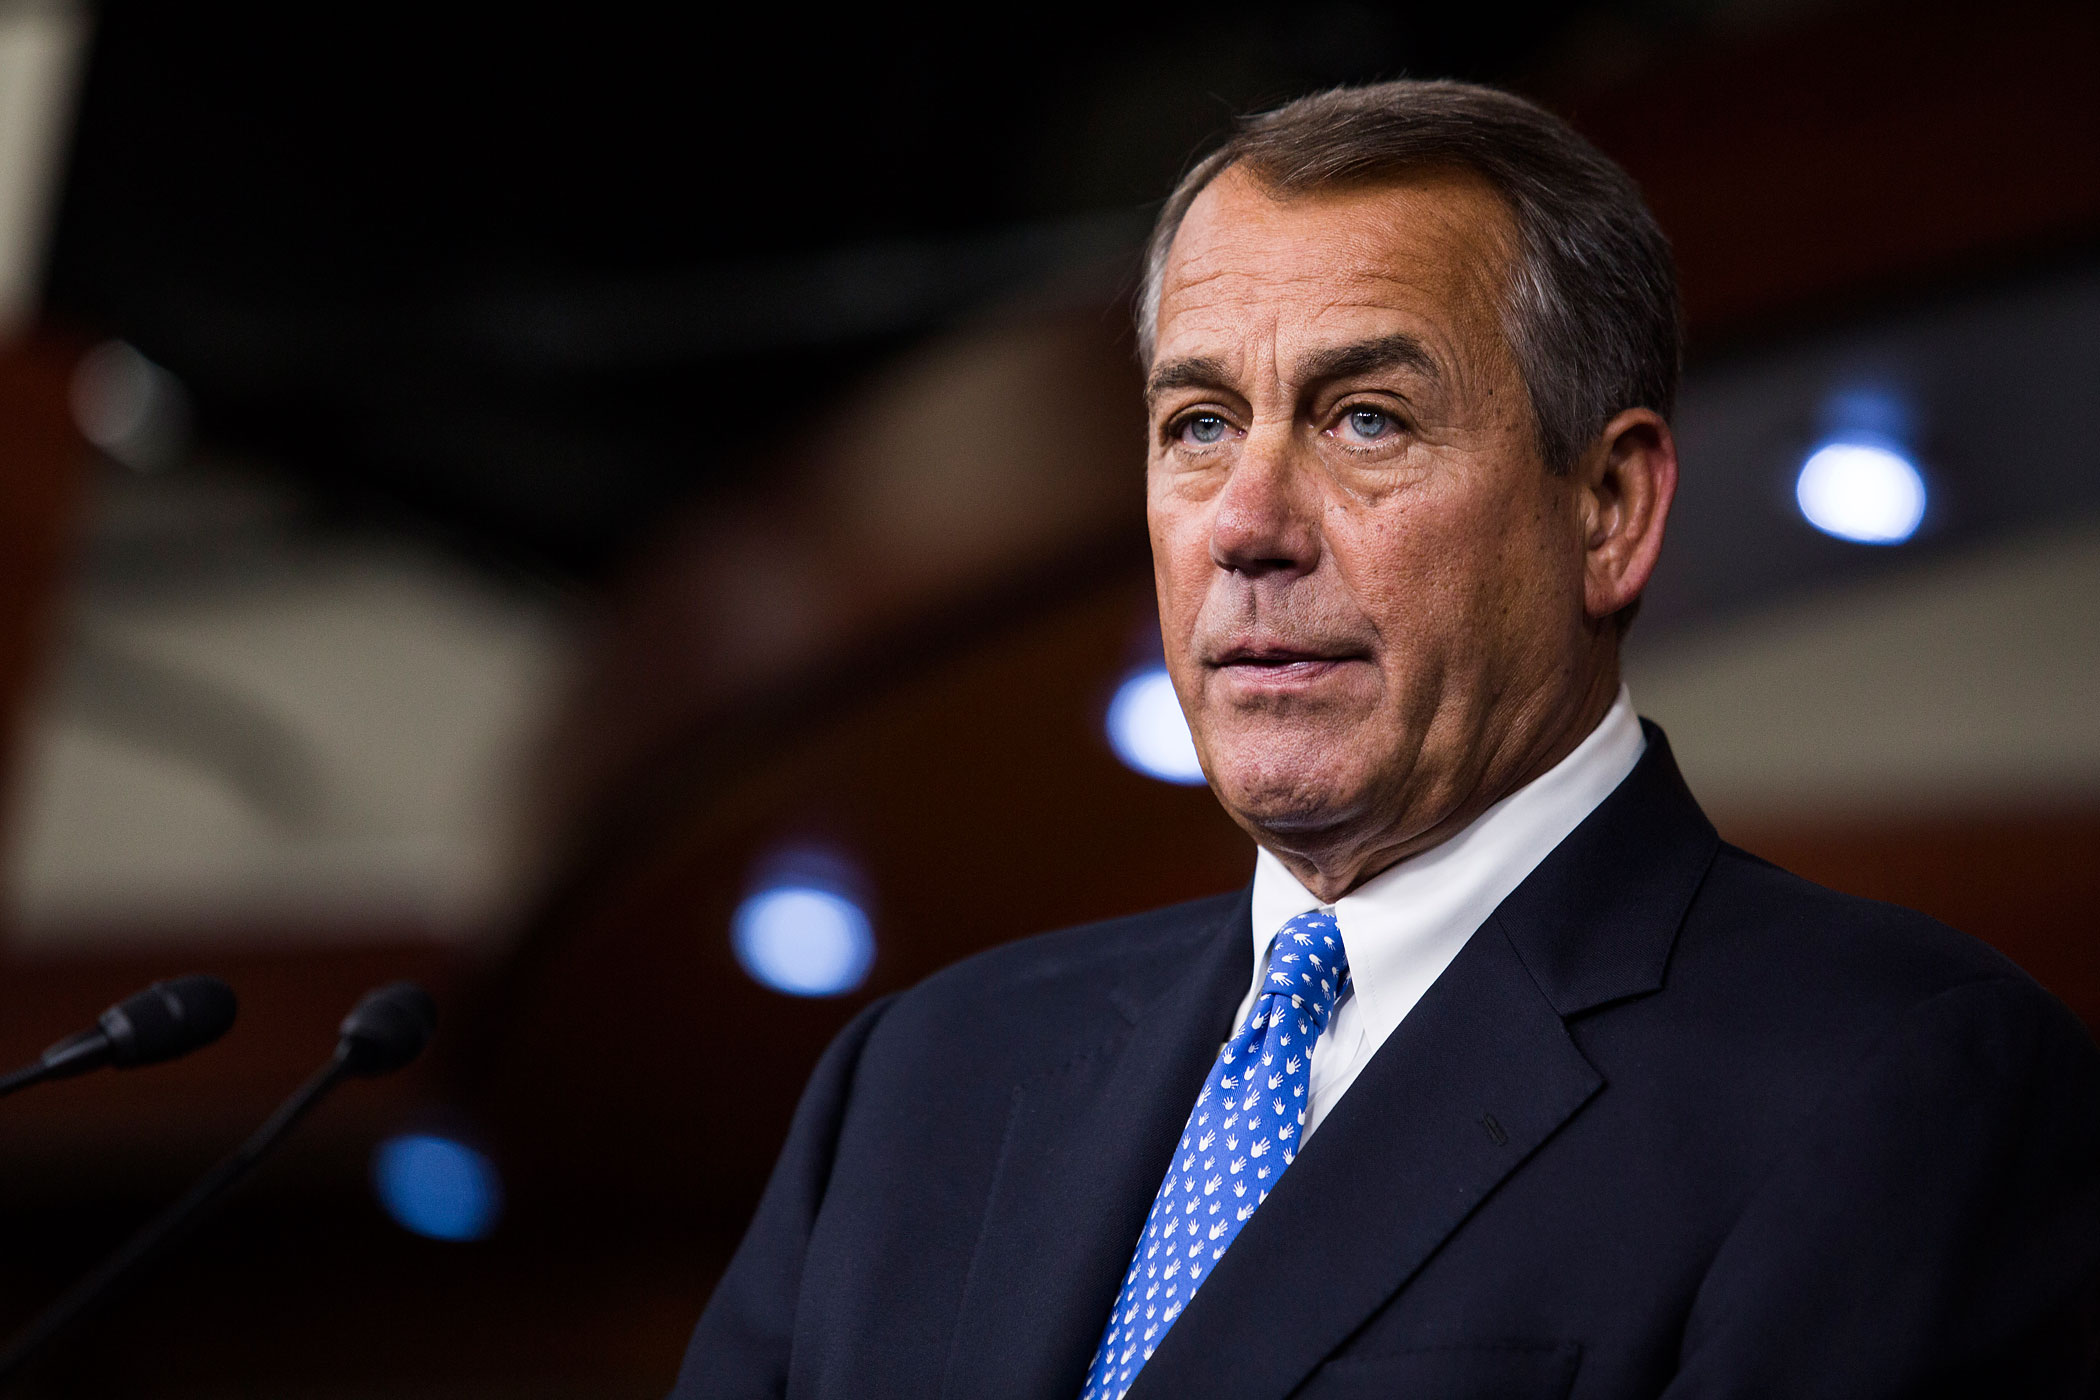 Speaker of the House John Boehner takes questions during a news conference on Capitol Hill on Jan. 16, 2014 in Washington, DC.